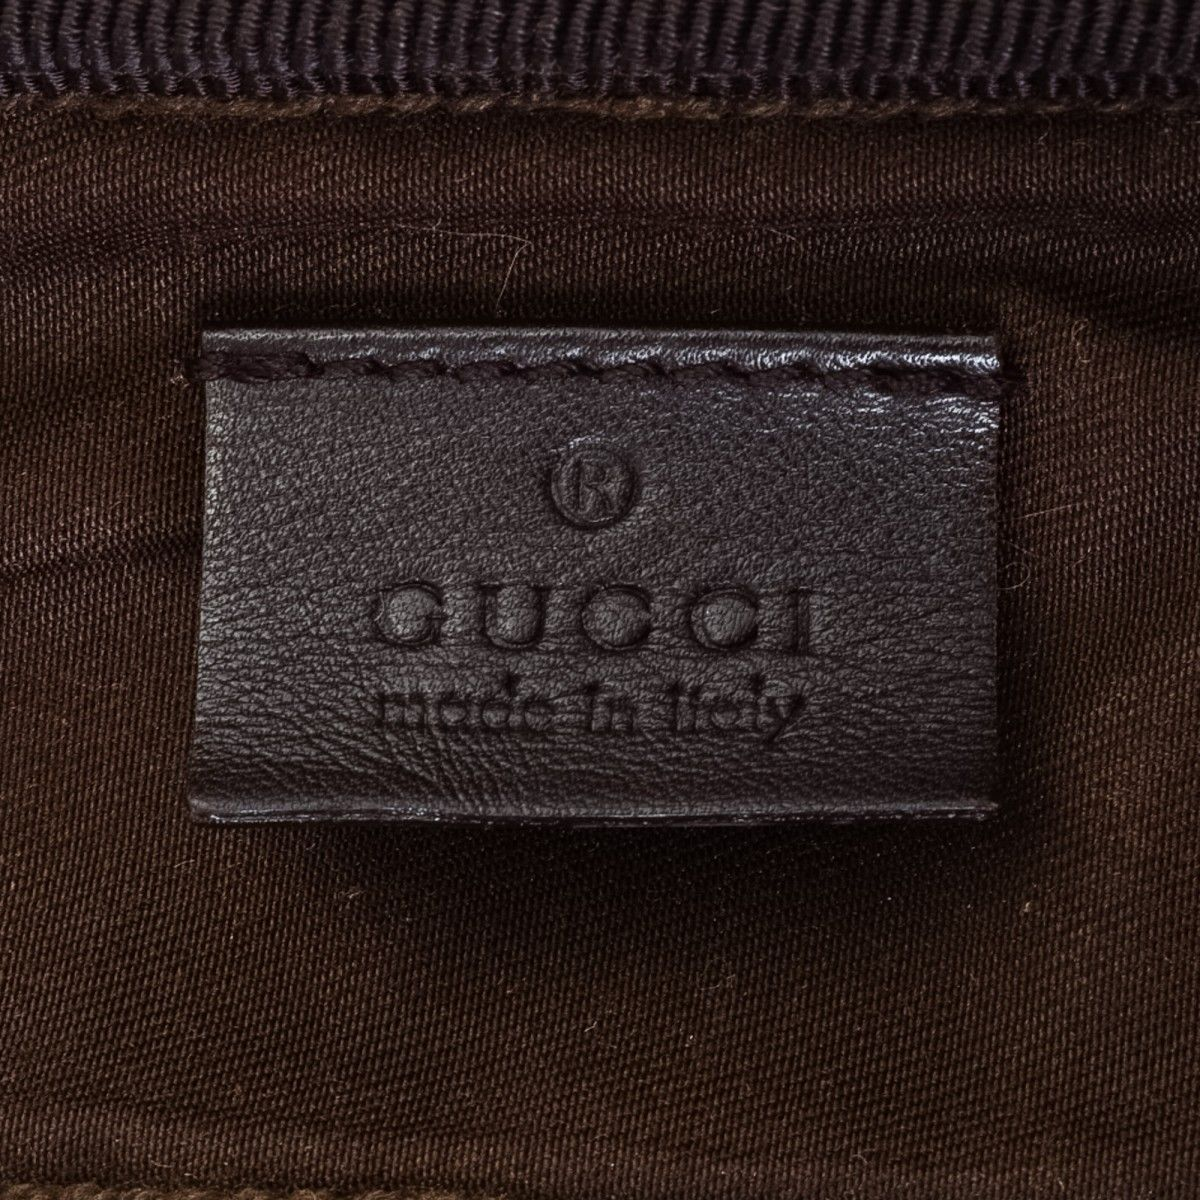 0880aef0539 Gucci GG Supreme Shirt Case. LXRandCo guarantees the authenticity of this vintage  Gucci Shirt Case travel bag. This beautiful weekend bag was crafted ...